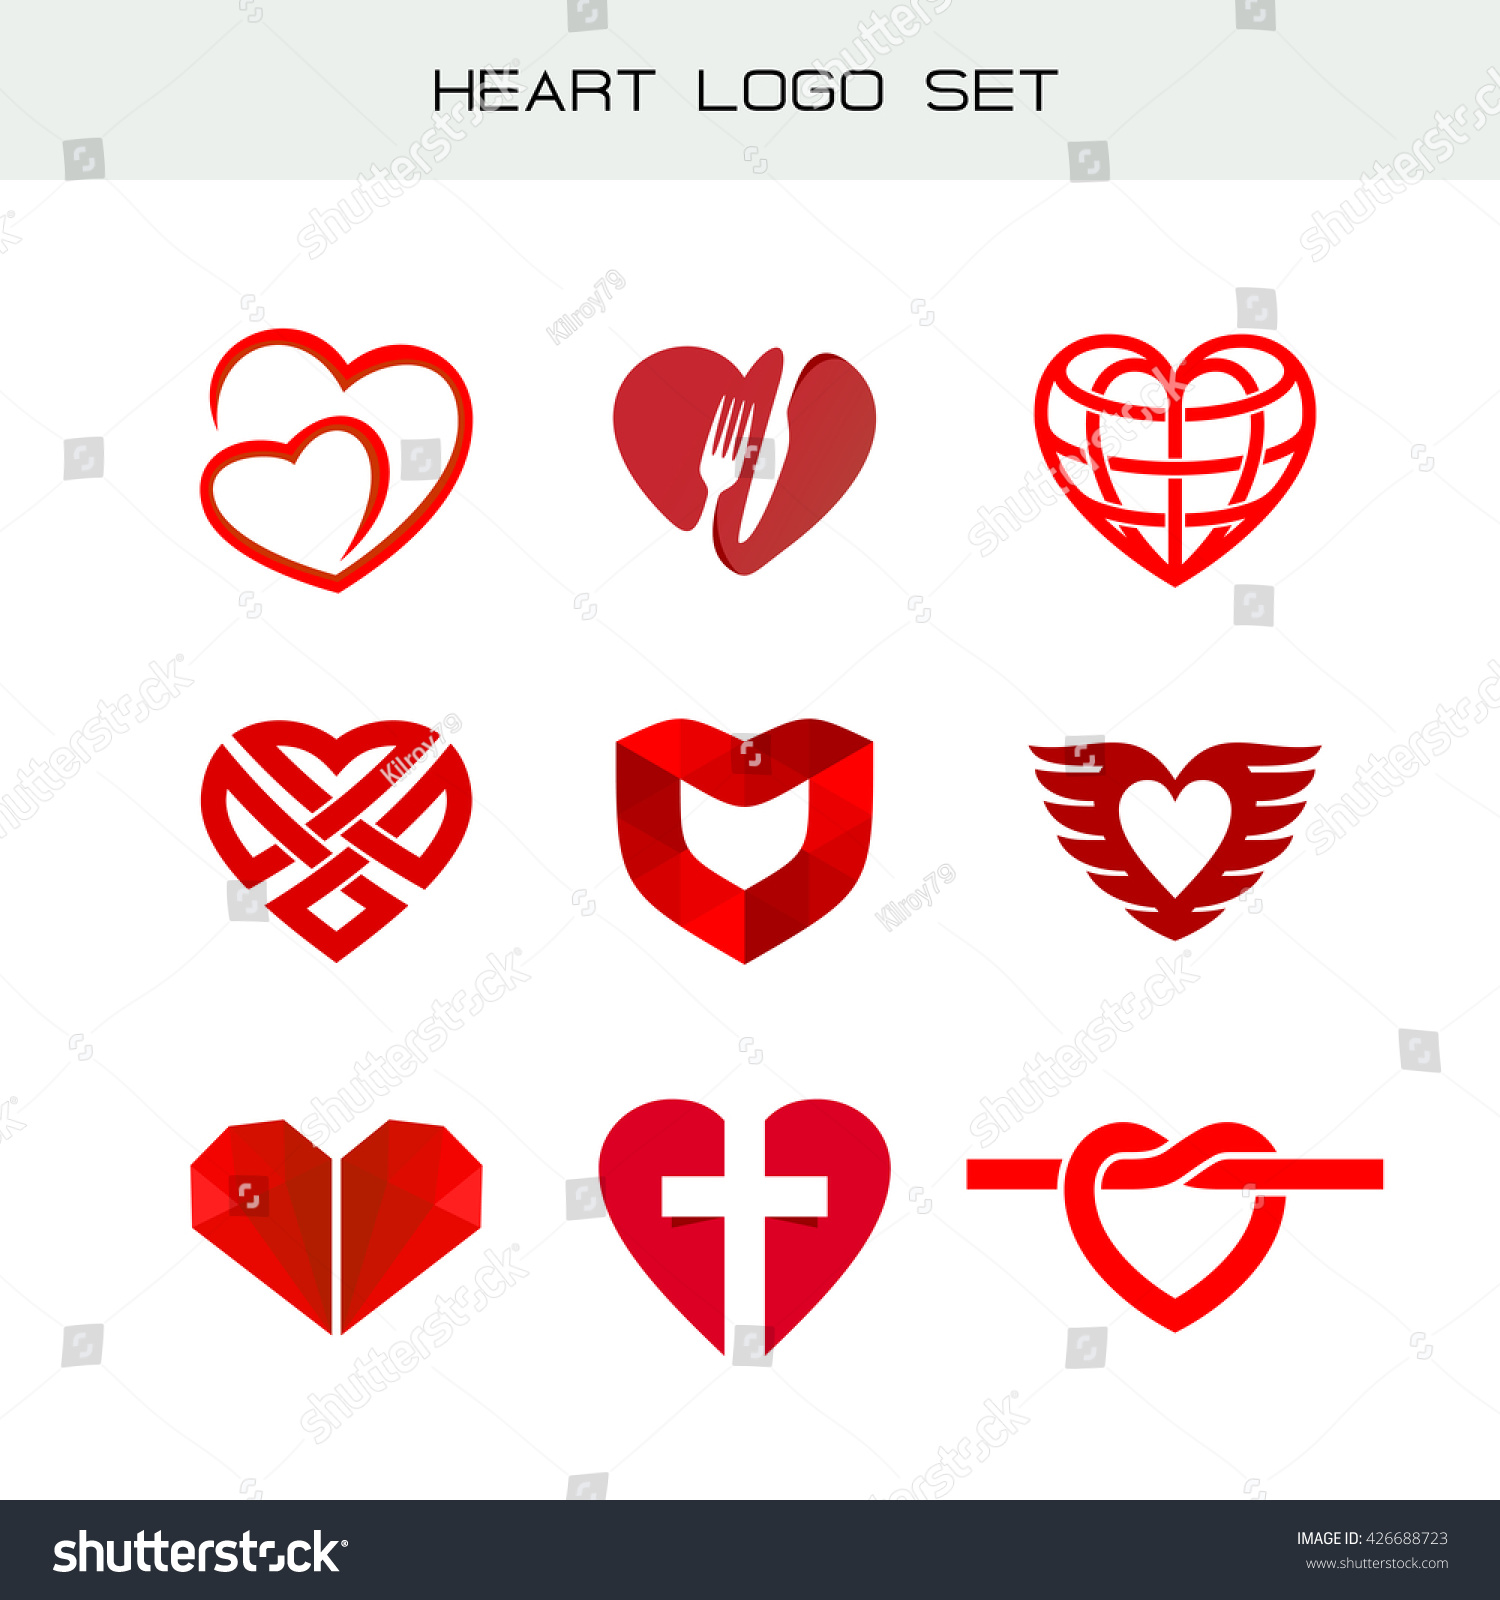 Heart logo set red heart symbols stock vector 426688723 shutterstock heart logo set red heart symbols heart icon for different appliance biocorpaavc Choice Image